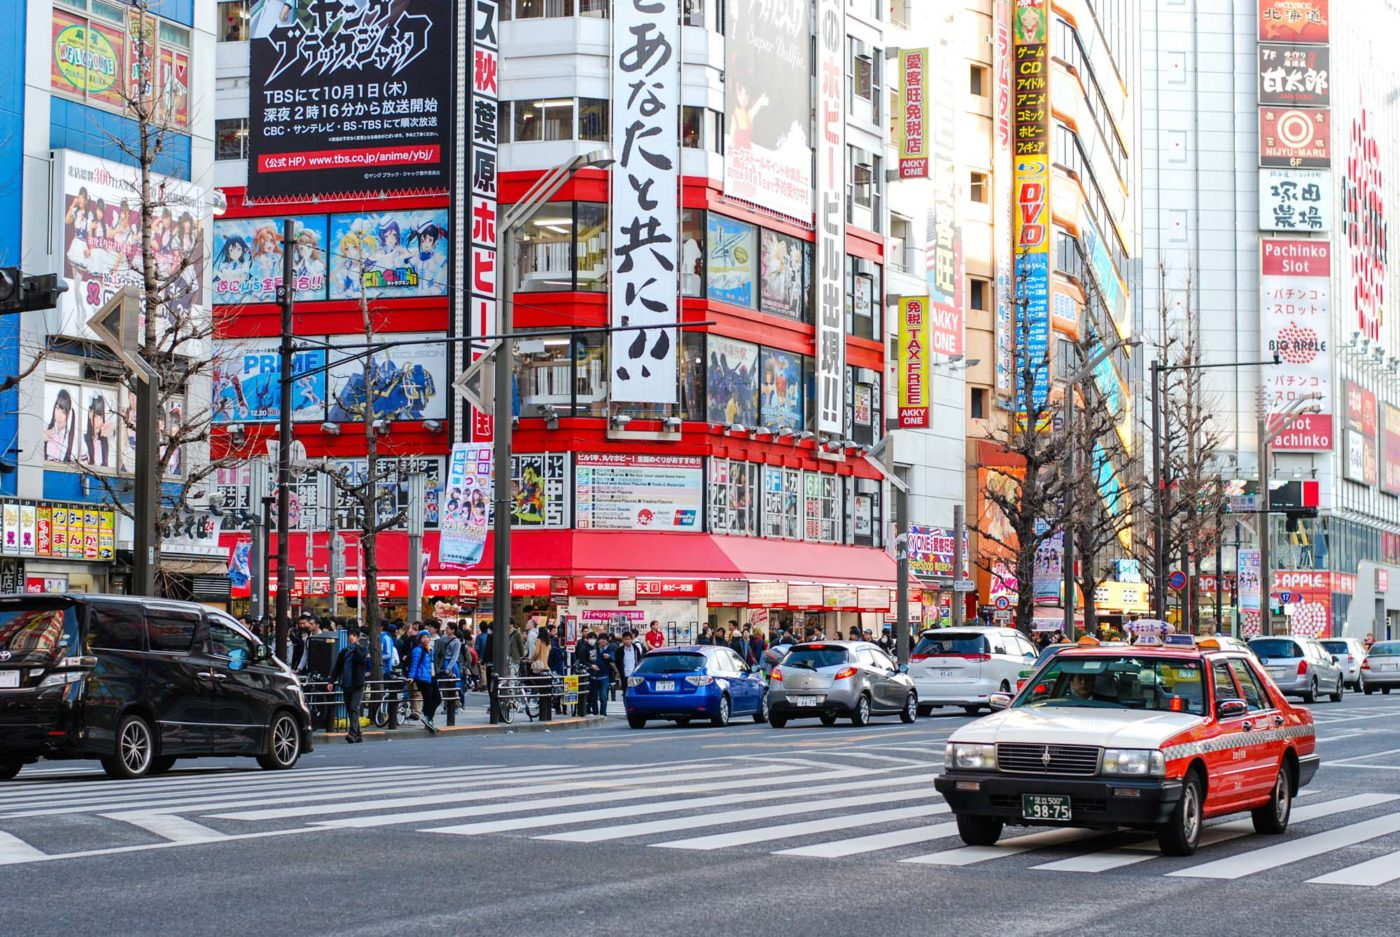 Unusual Things to See and Do in Crazy Tokyo